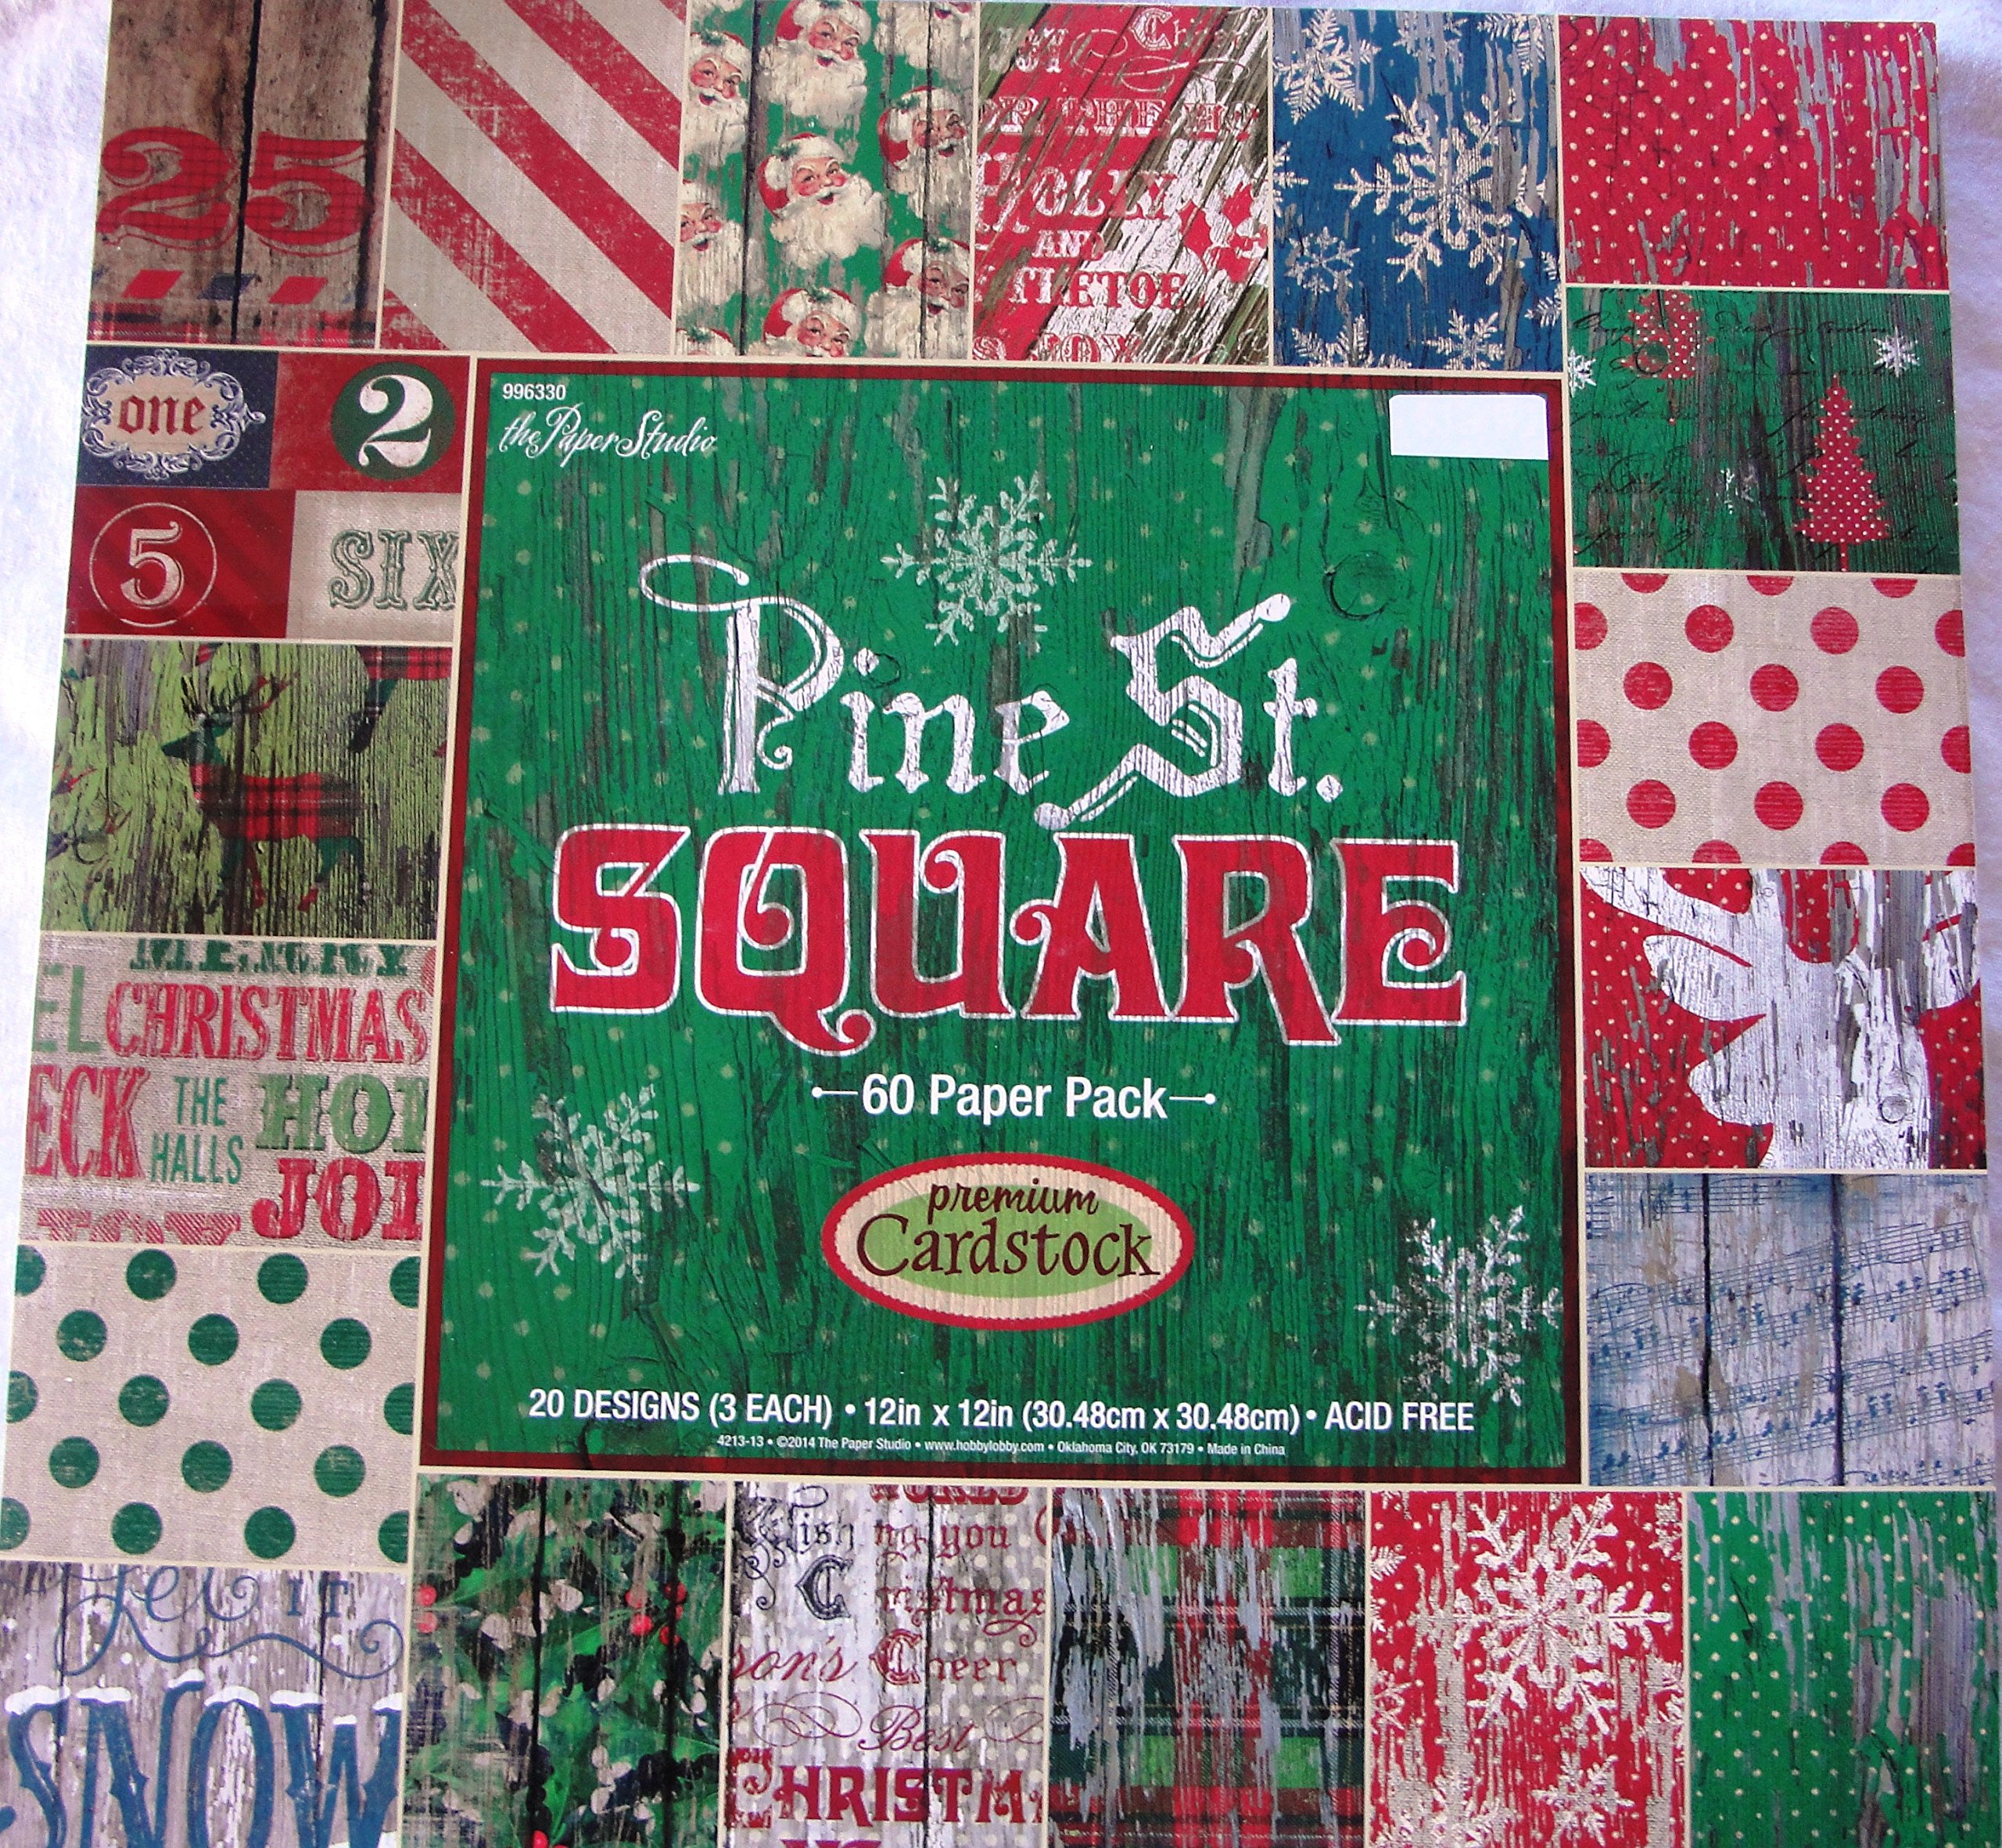 Pine St. Square 12x12 Premium Cardstock Christmas Scrapbooking Paper Pack 60 Sheets Christmas